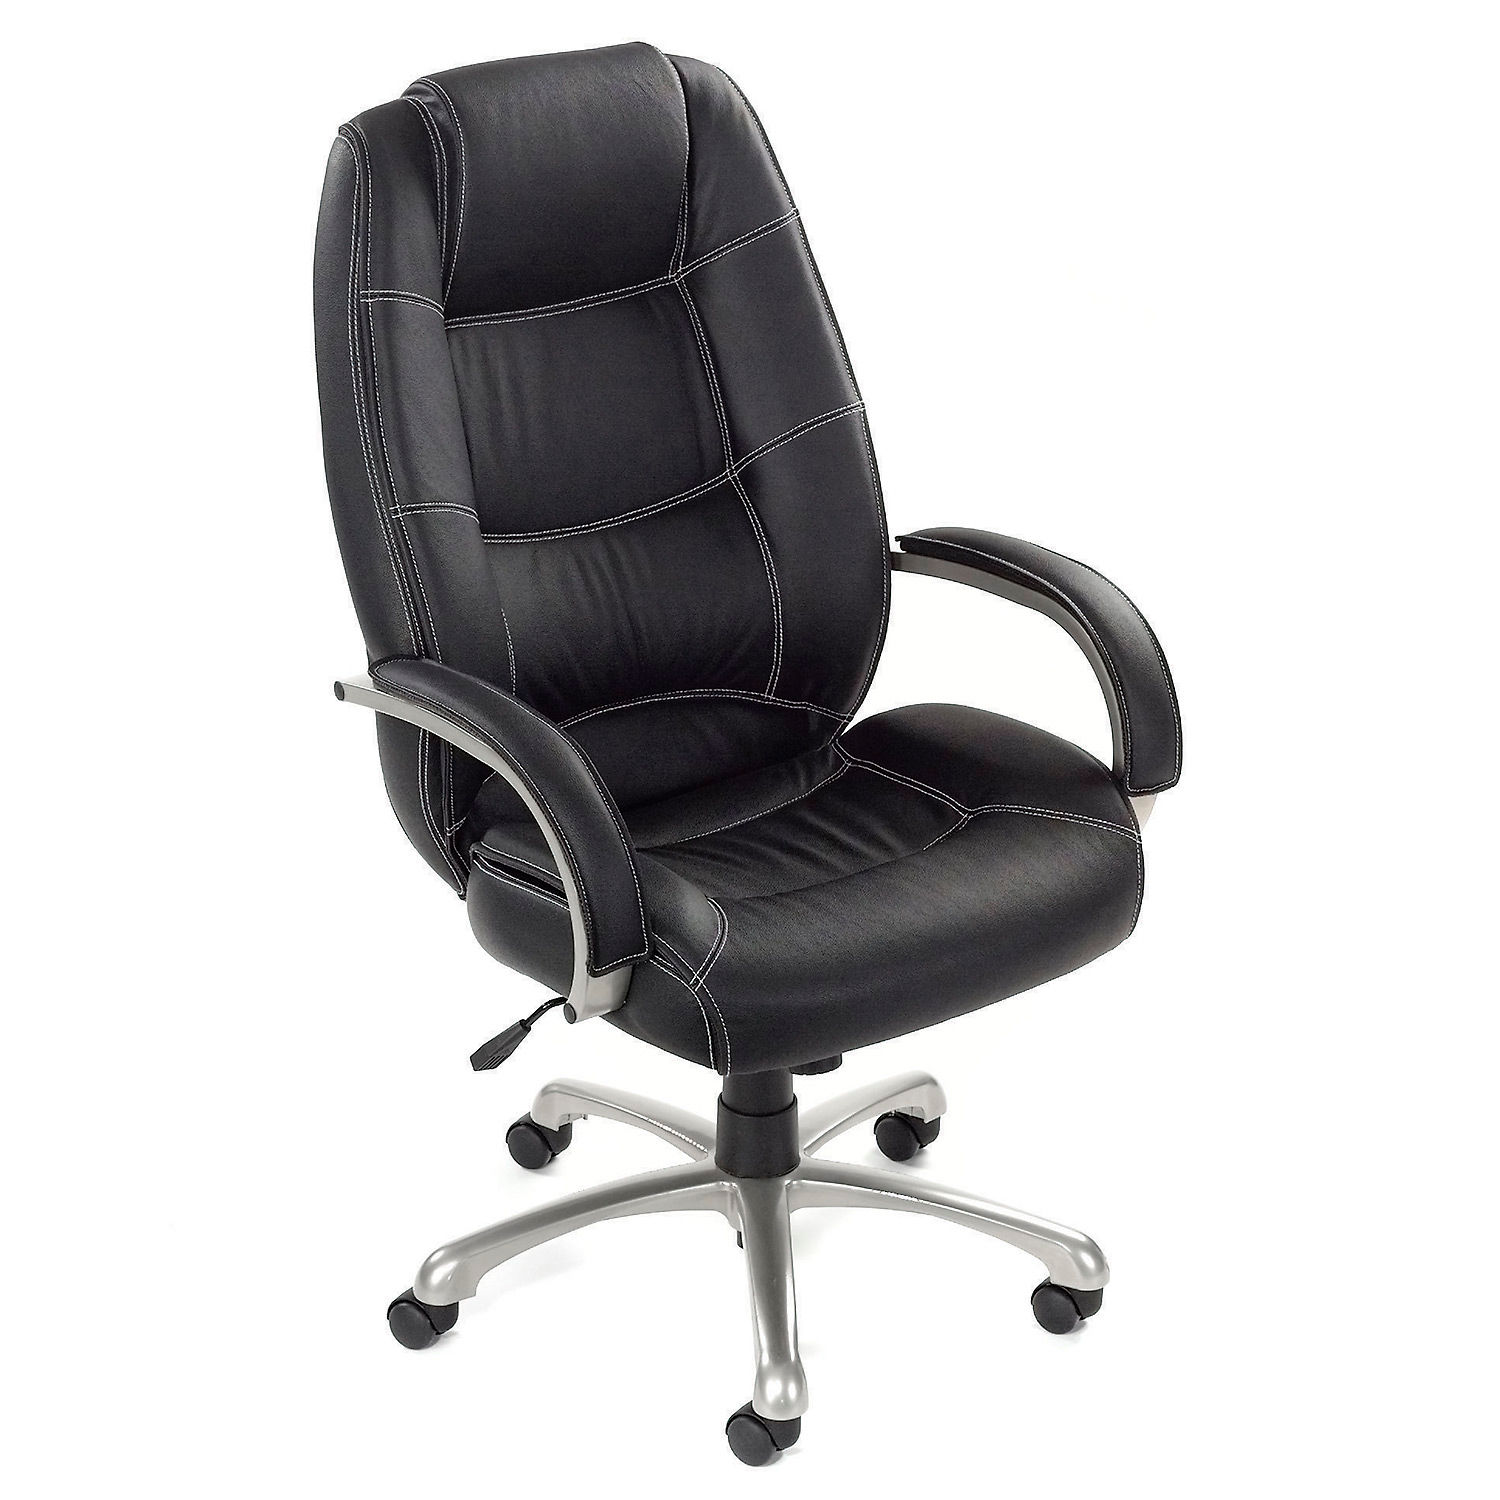 Saddle Office Chair Chairs Leather Upholstered Executive Office Chair With Arms